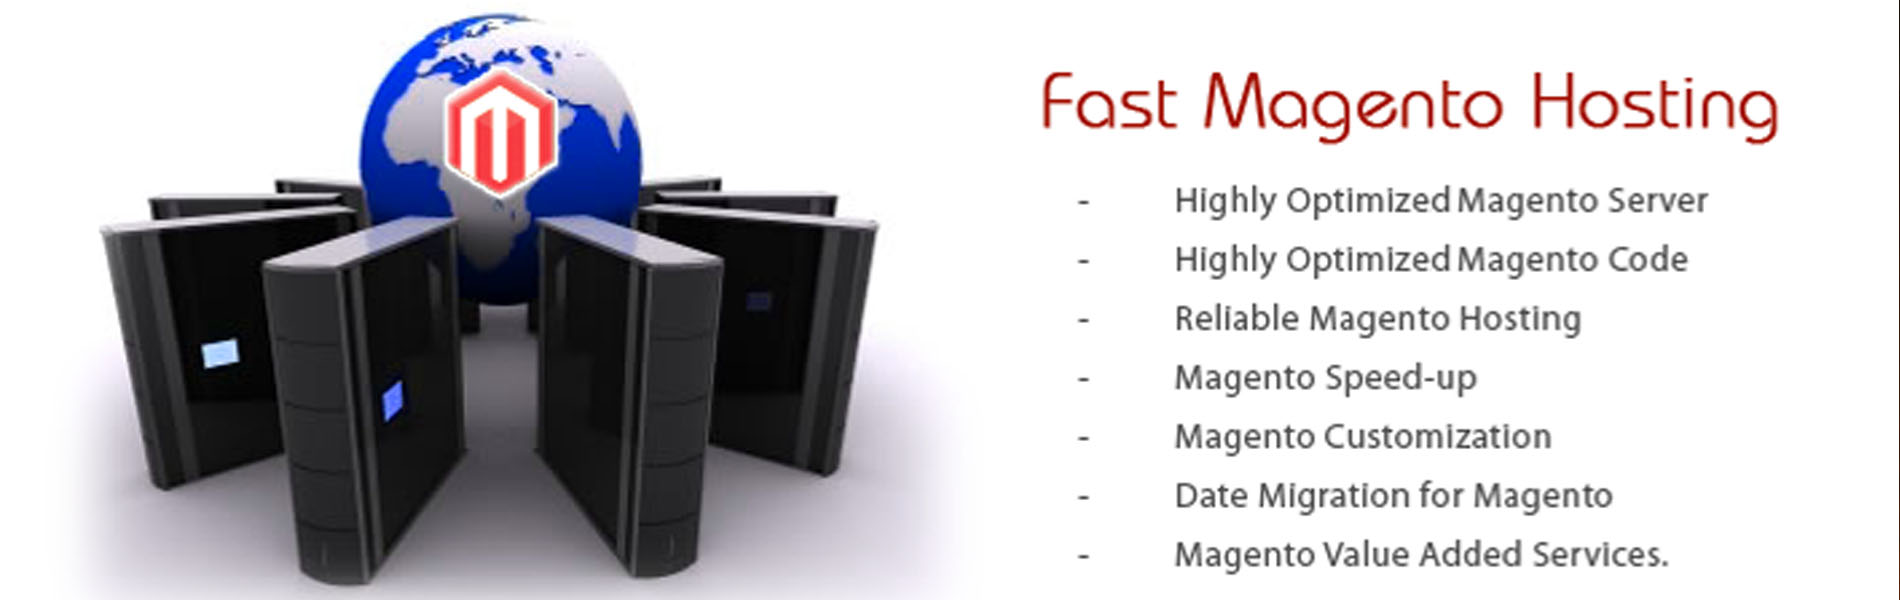 Fast Magento Hosting Tips